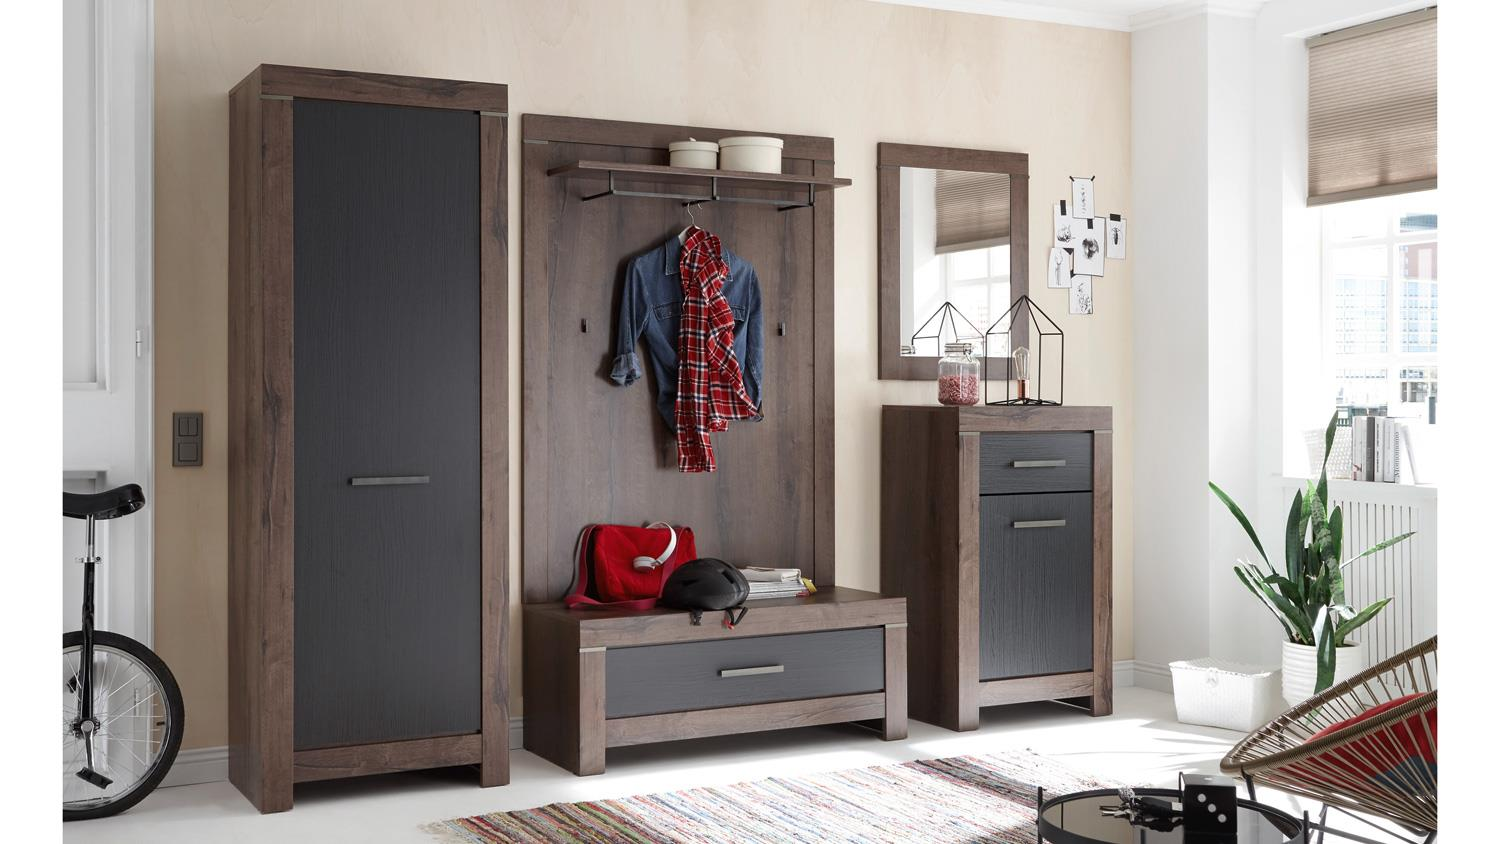 spiegel balin wandspiegel garderobenspiegel garderobe in canyon eiche. Black Bedroom Furniture Sets. Home Design Ideas